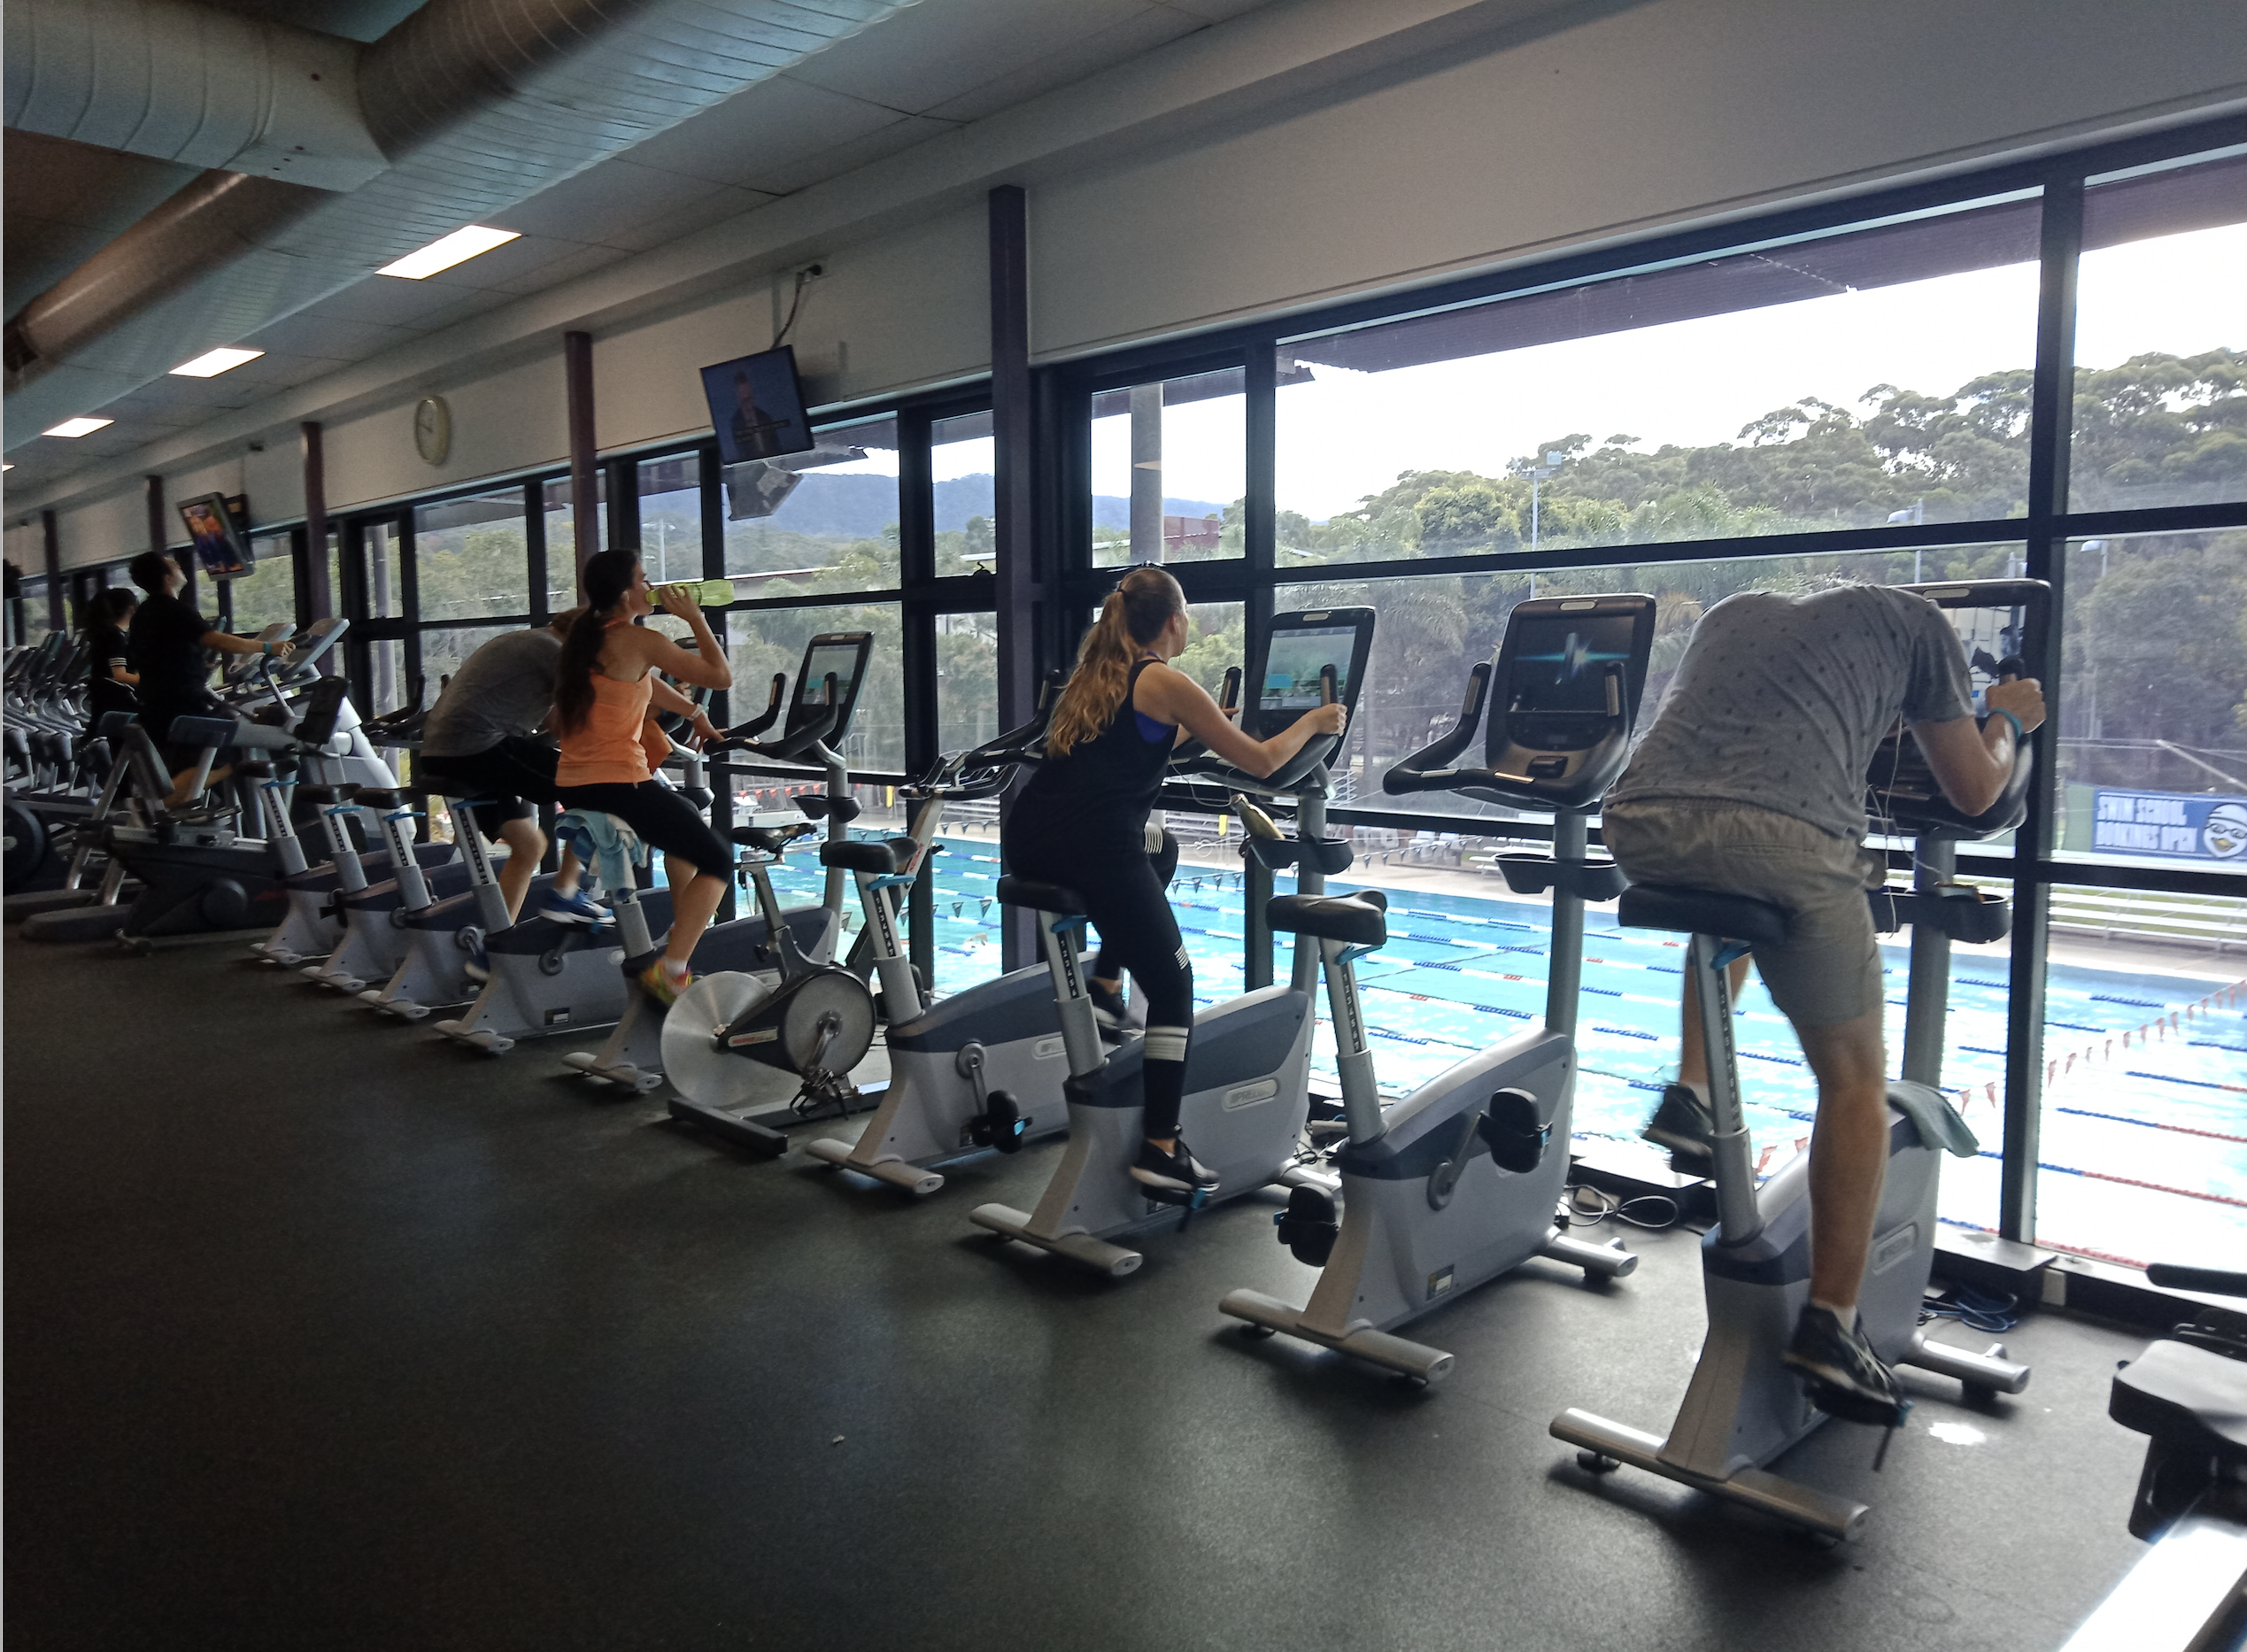 Gym the thing for Aust physical activity: Report